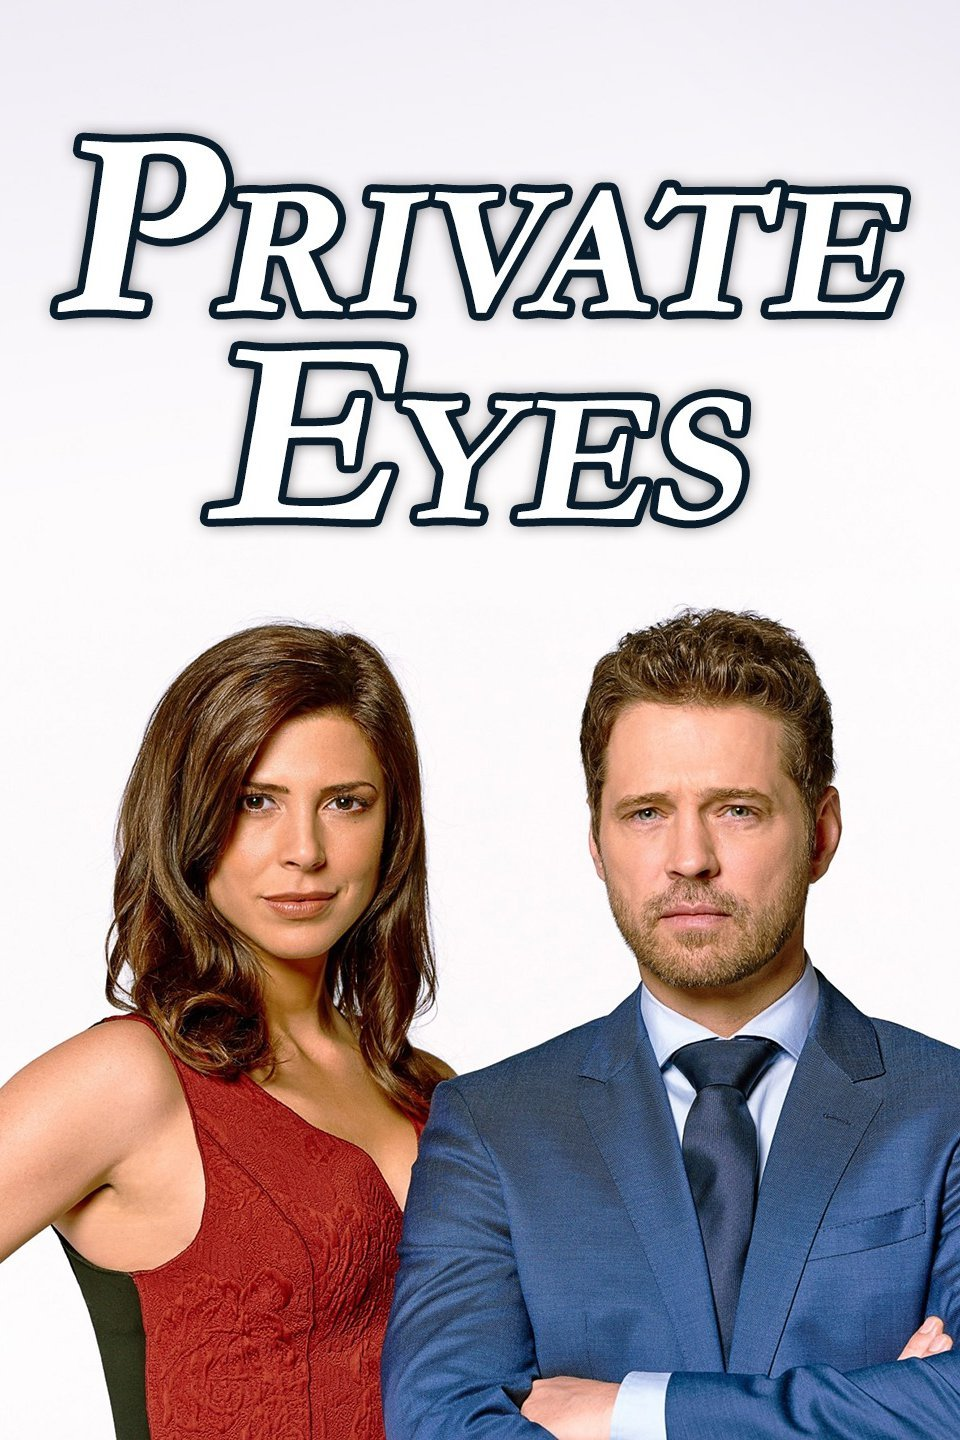 Private Eyes Tv Series Download Season 2 Episode 3 HDTV Micromkv